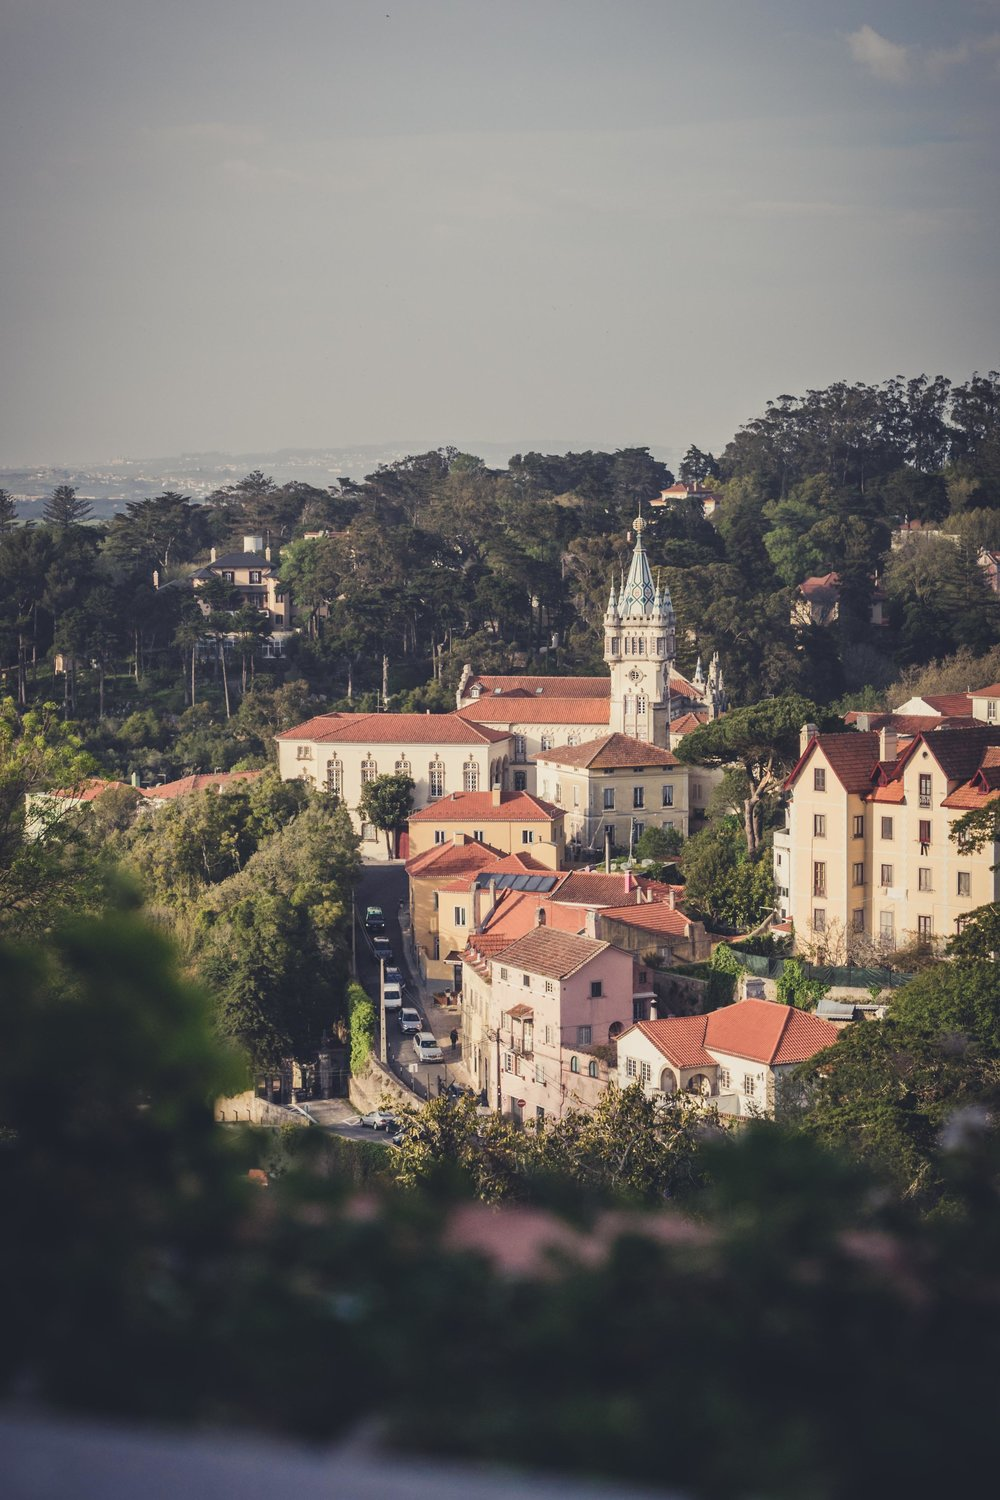 Portugal. Travel. Sintra. Sunshine. Hotel. History. view. room with a view. pena palace.  palace. town. old town. castle. castelo dos mouros. bar view.jpg